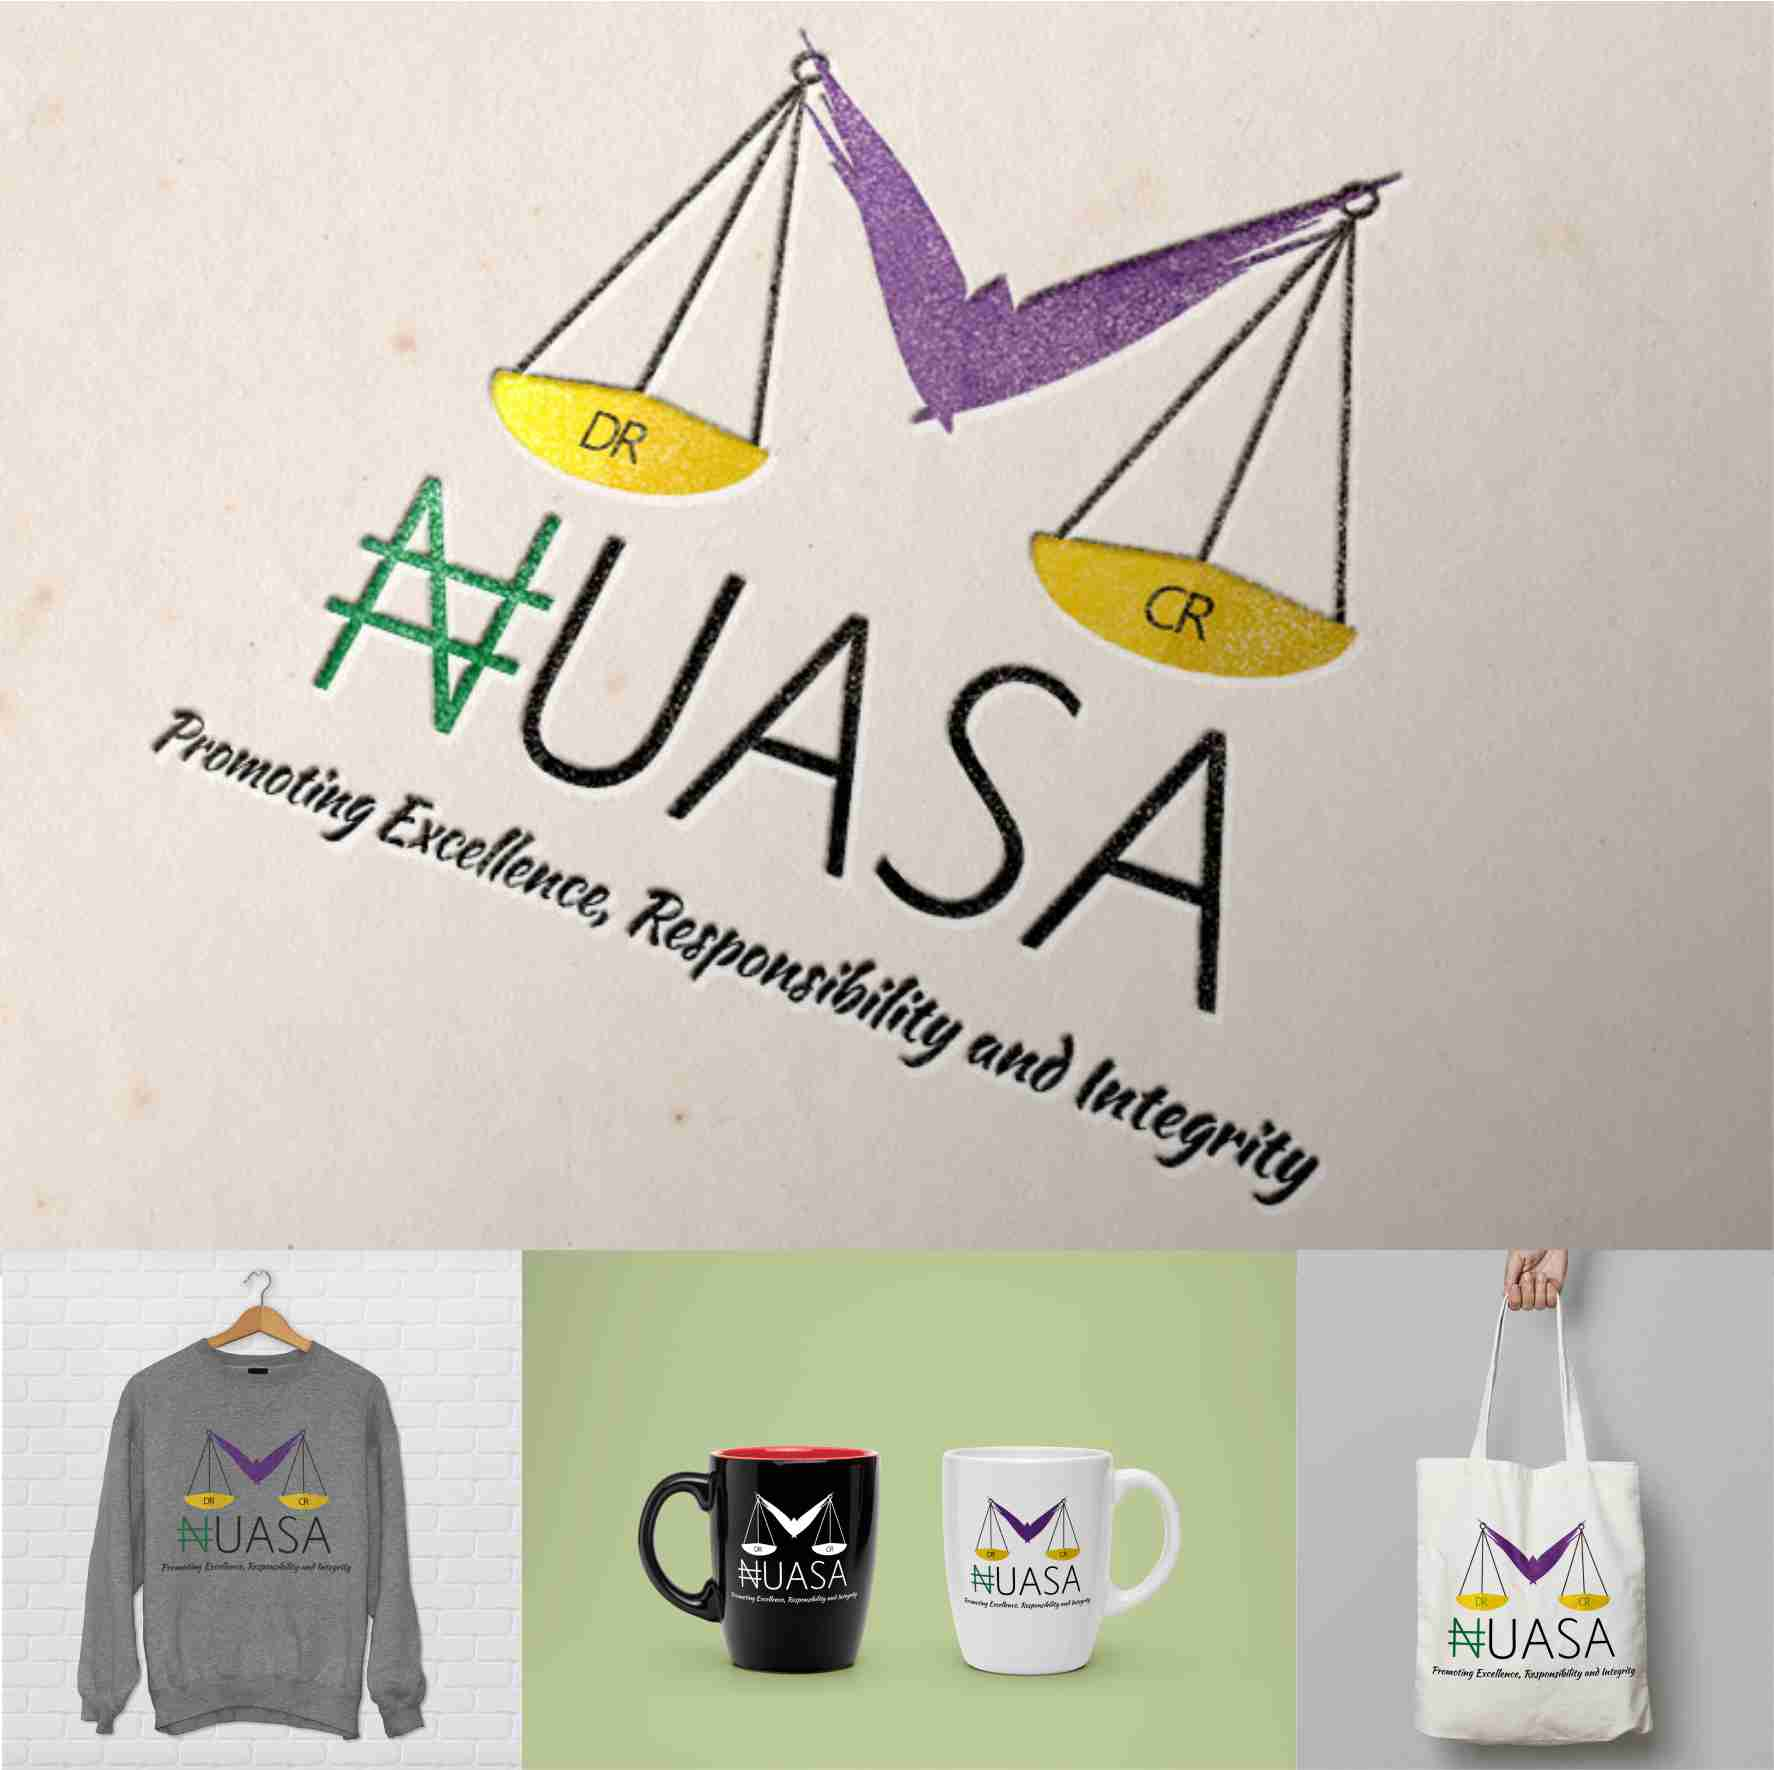 NUASA (Nigerian Universities Accounting Students Association) graphics design branding by David Rotimi